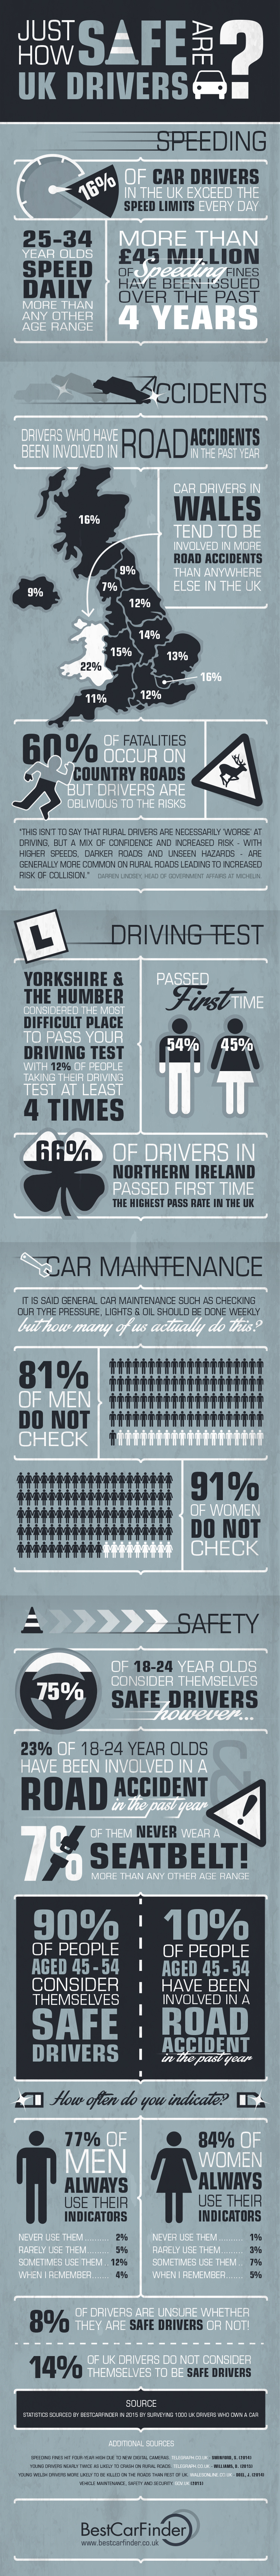 Just How Safe Are UK Drivers?